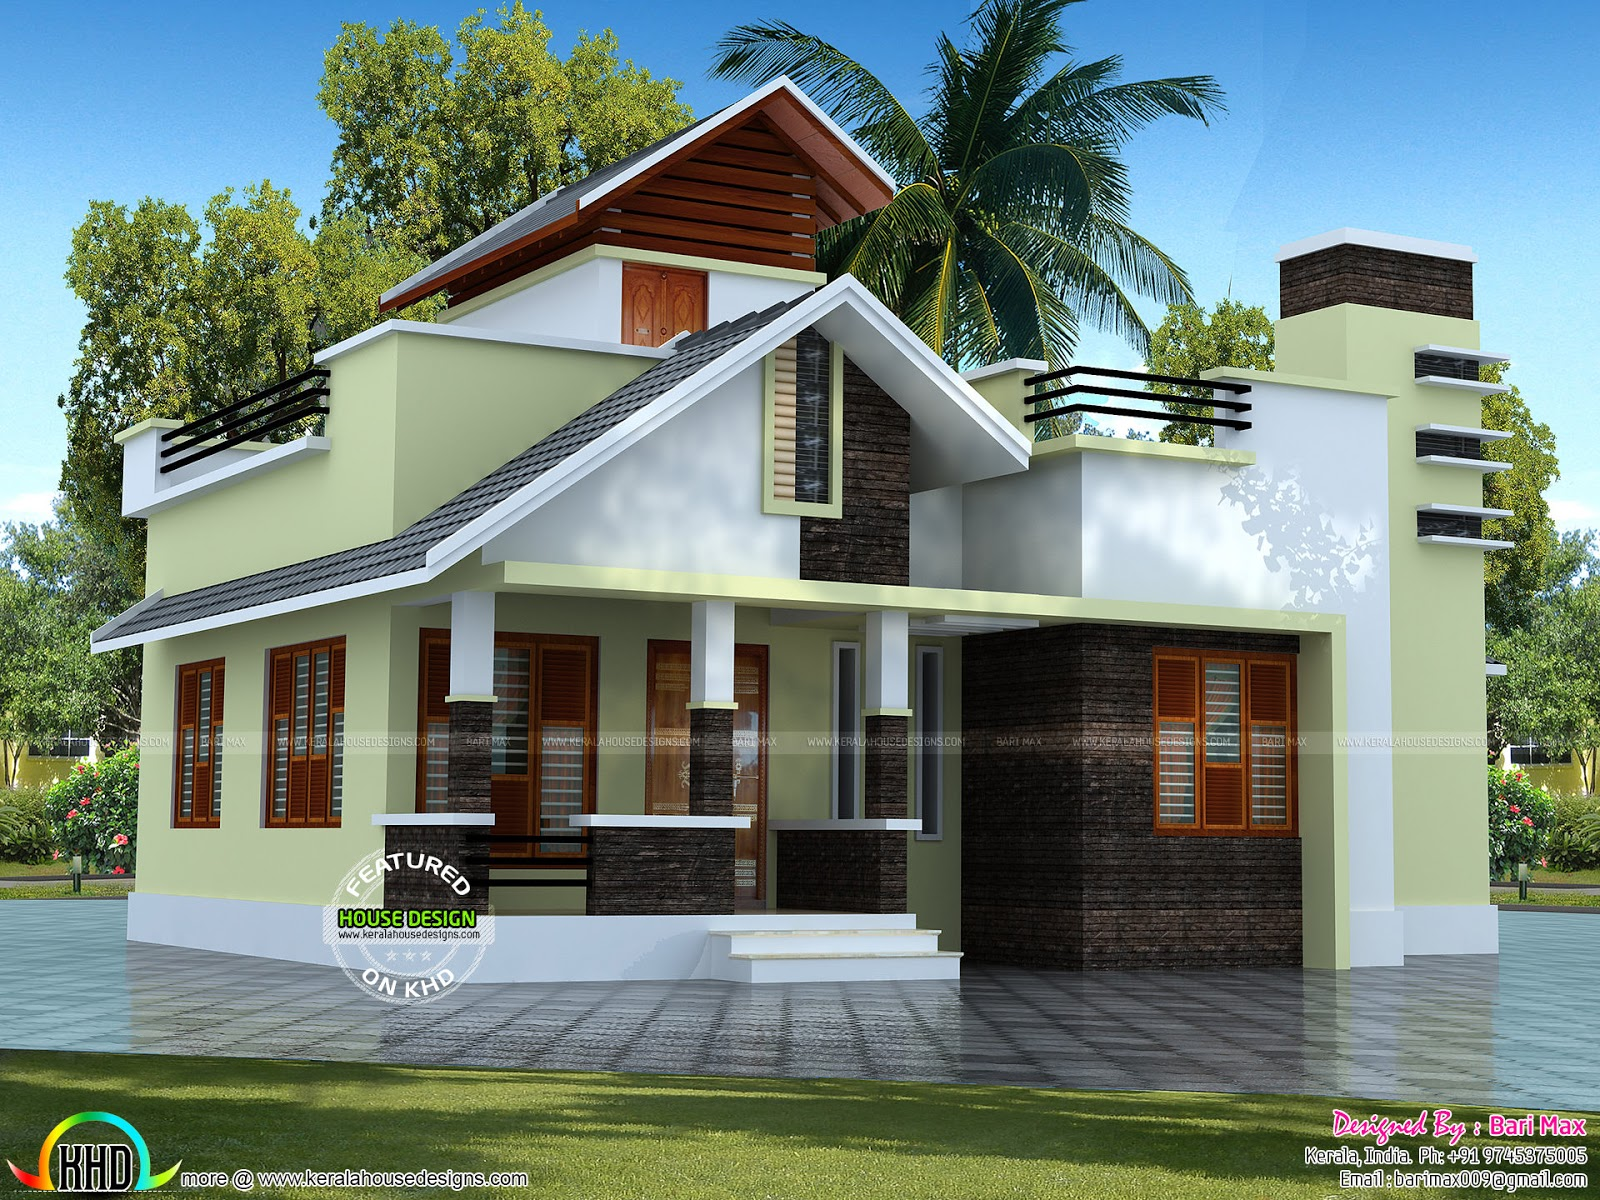 Low cost single floor home 1050 sq ft kerala home design for Single floor house